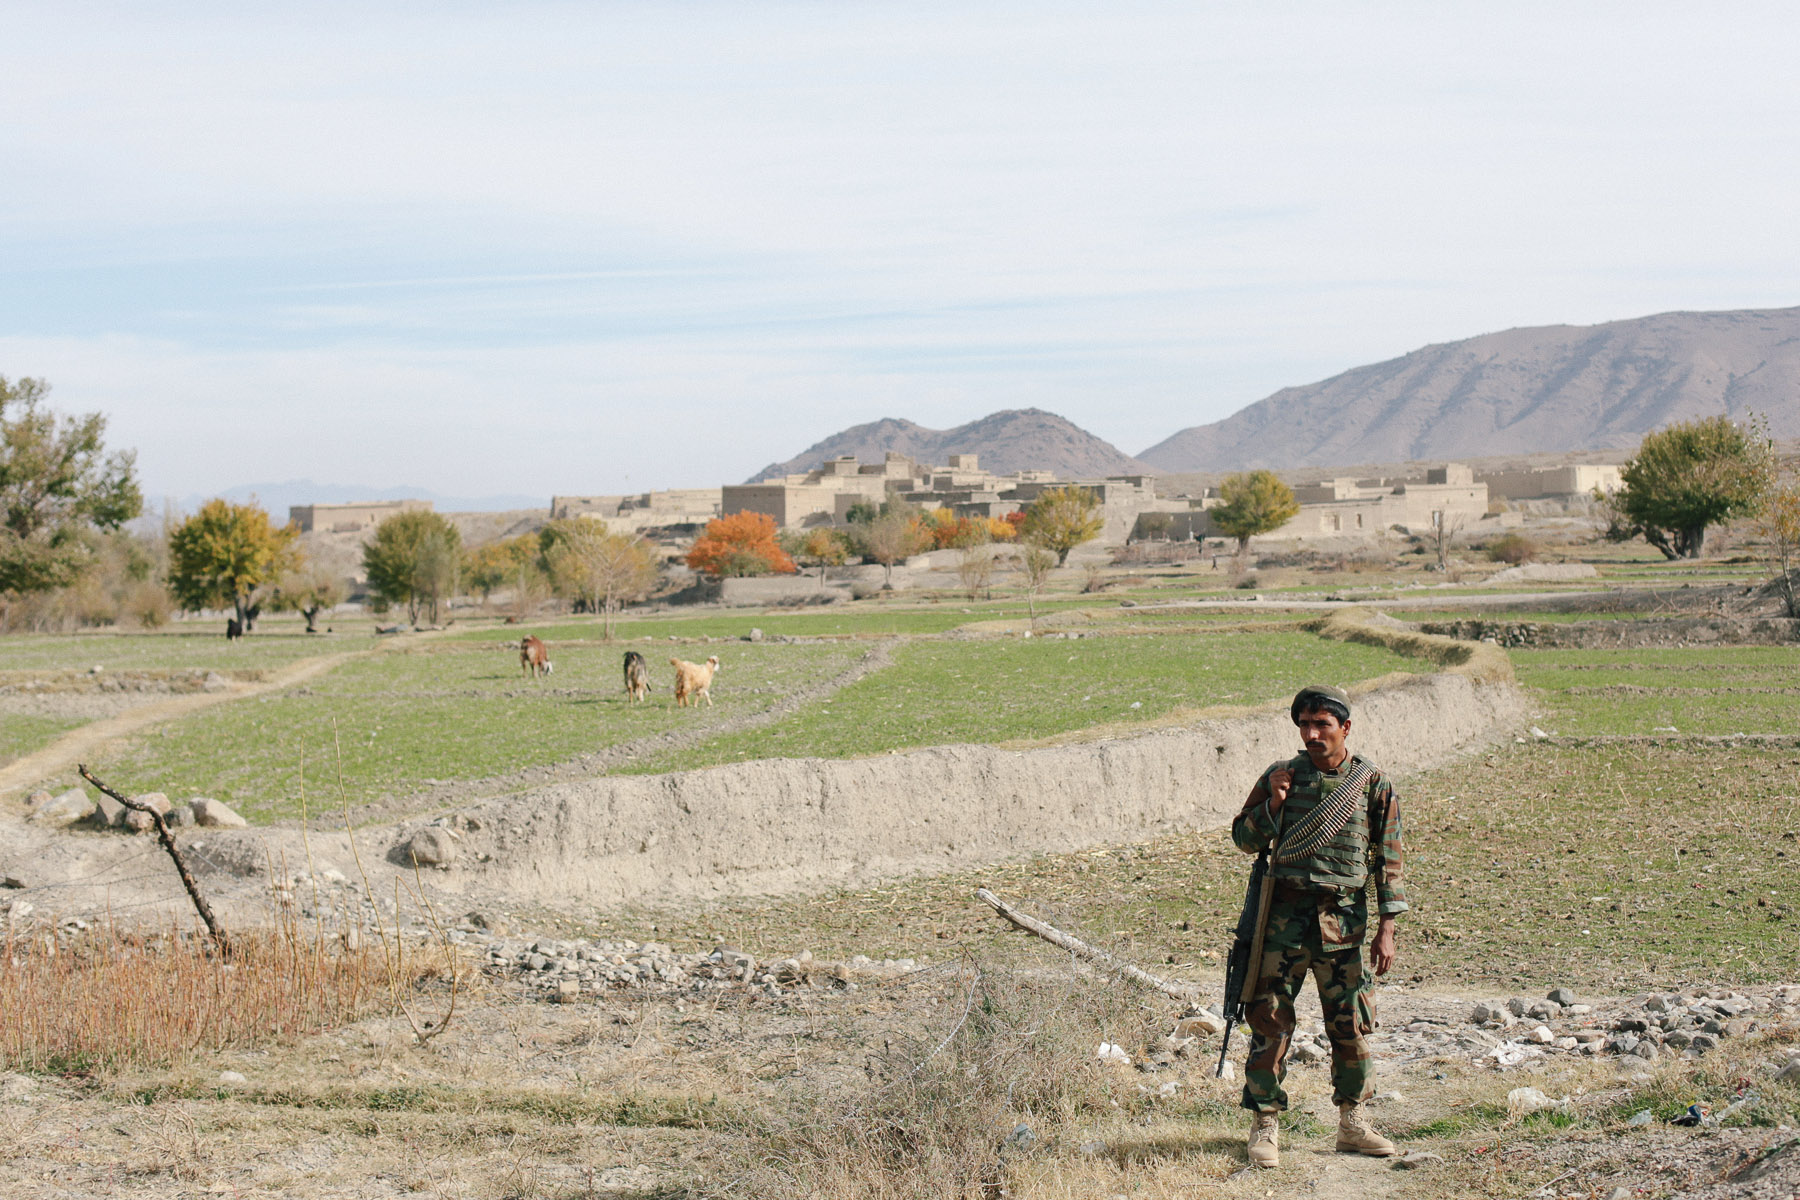 An Afghan National Army soldier pauses on patrol near the Pakistan border. Many ANA soldiers are from distant parts of the country, do not speak the local dialect, and may be considered by locals nearly as foreign as ISAF personnel.